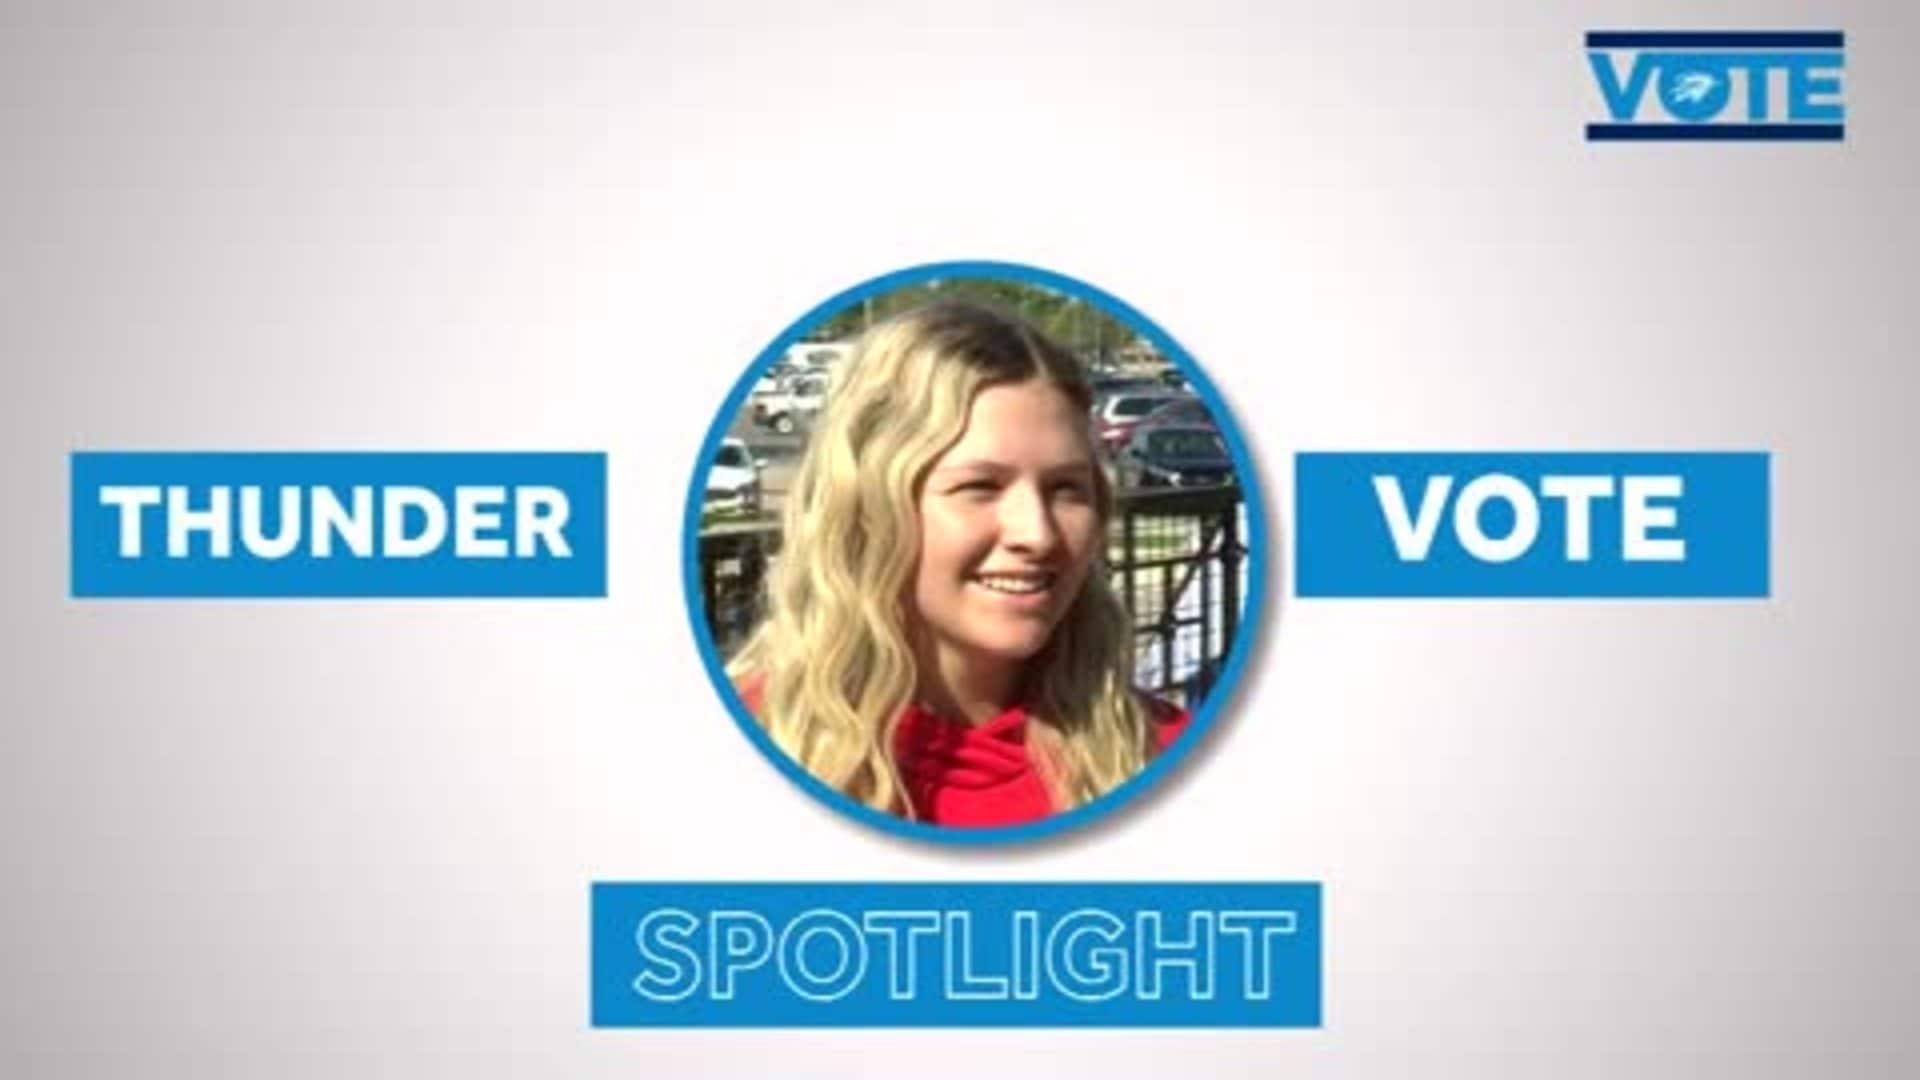 Thunder VOTE Spotlight: 'Make A Difference'